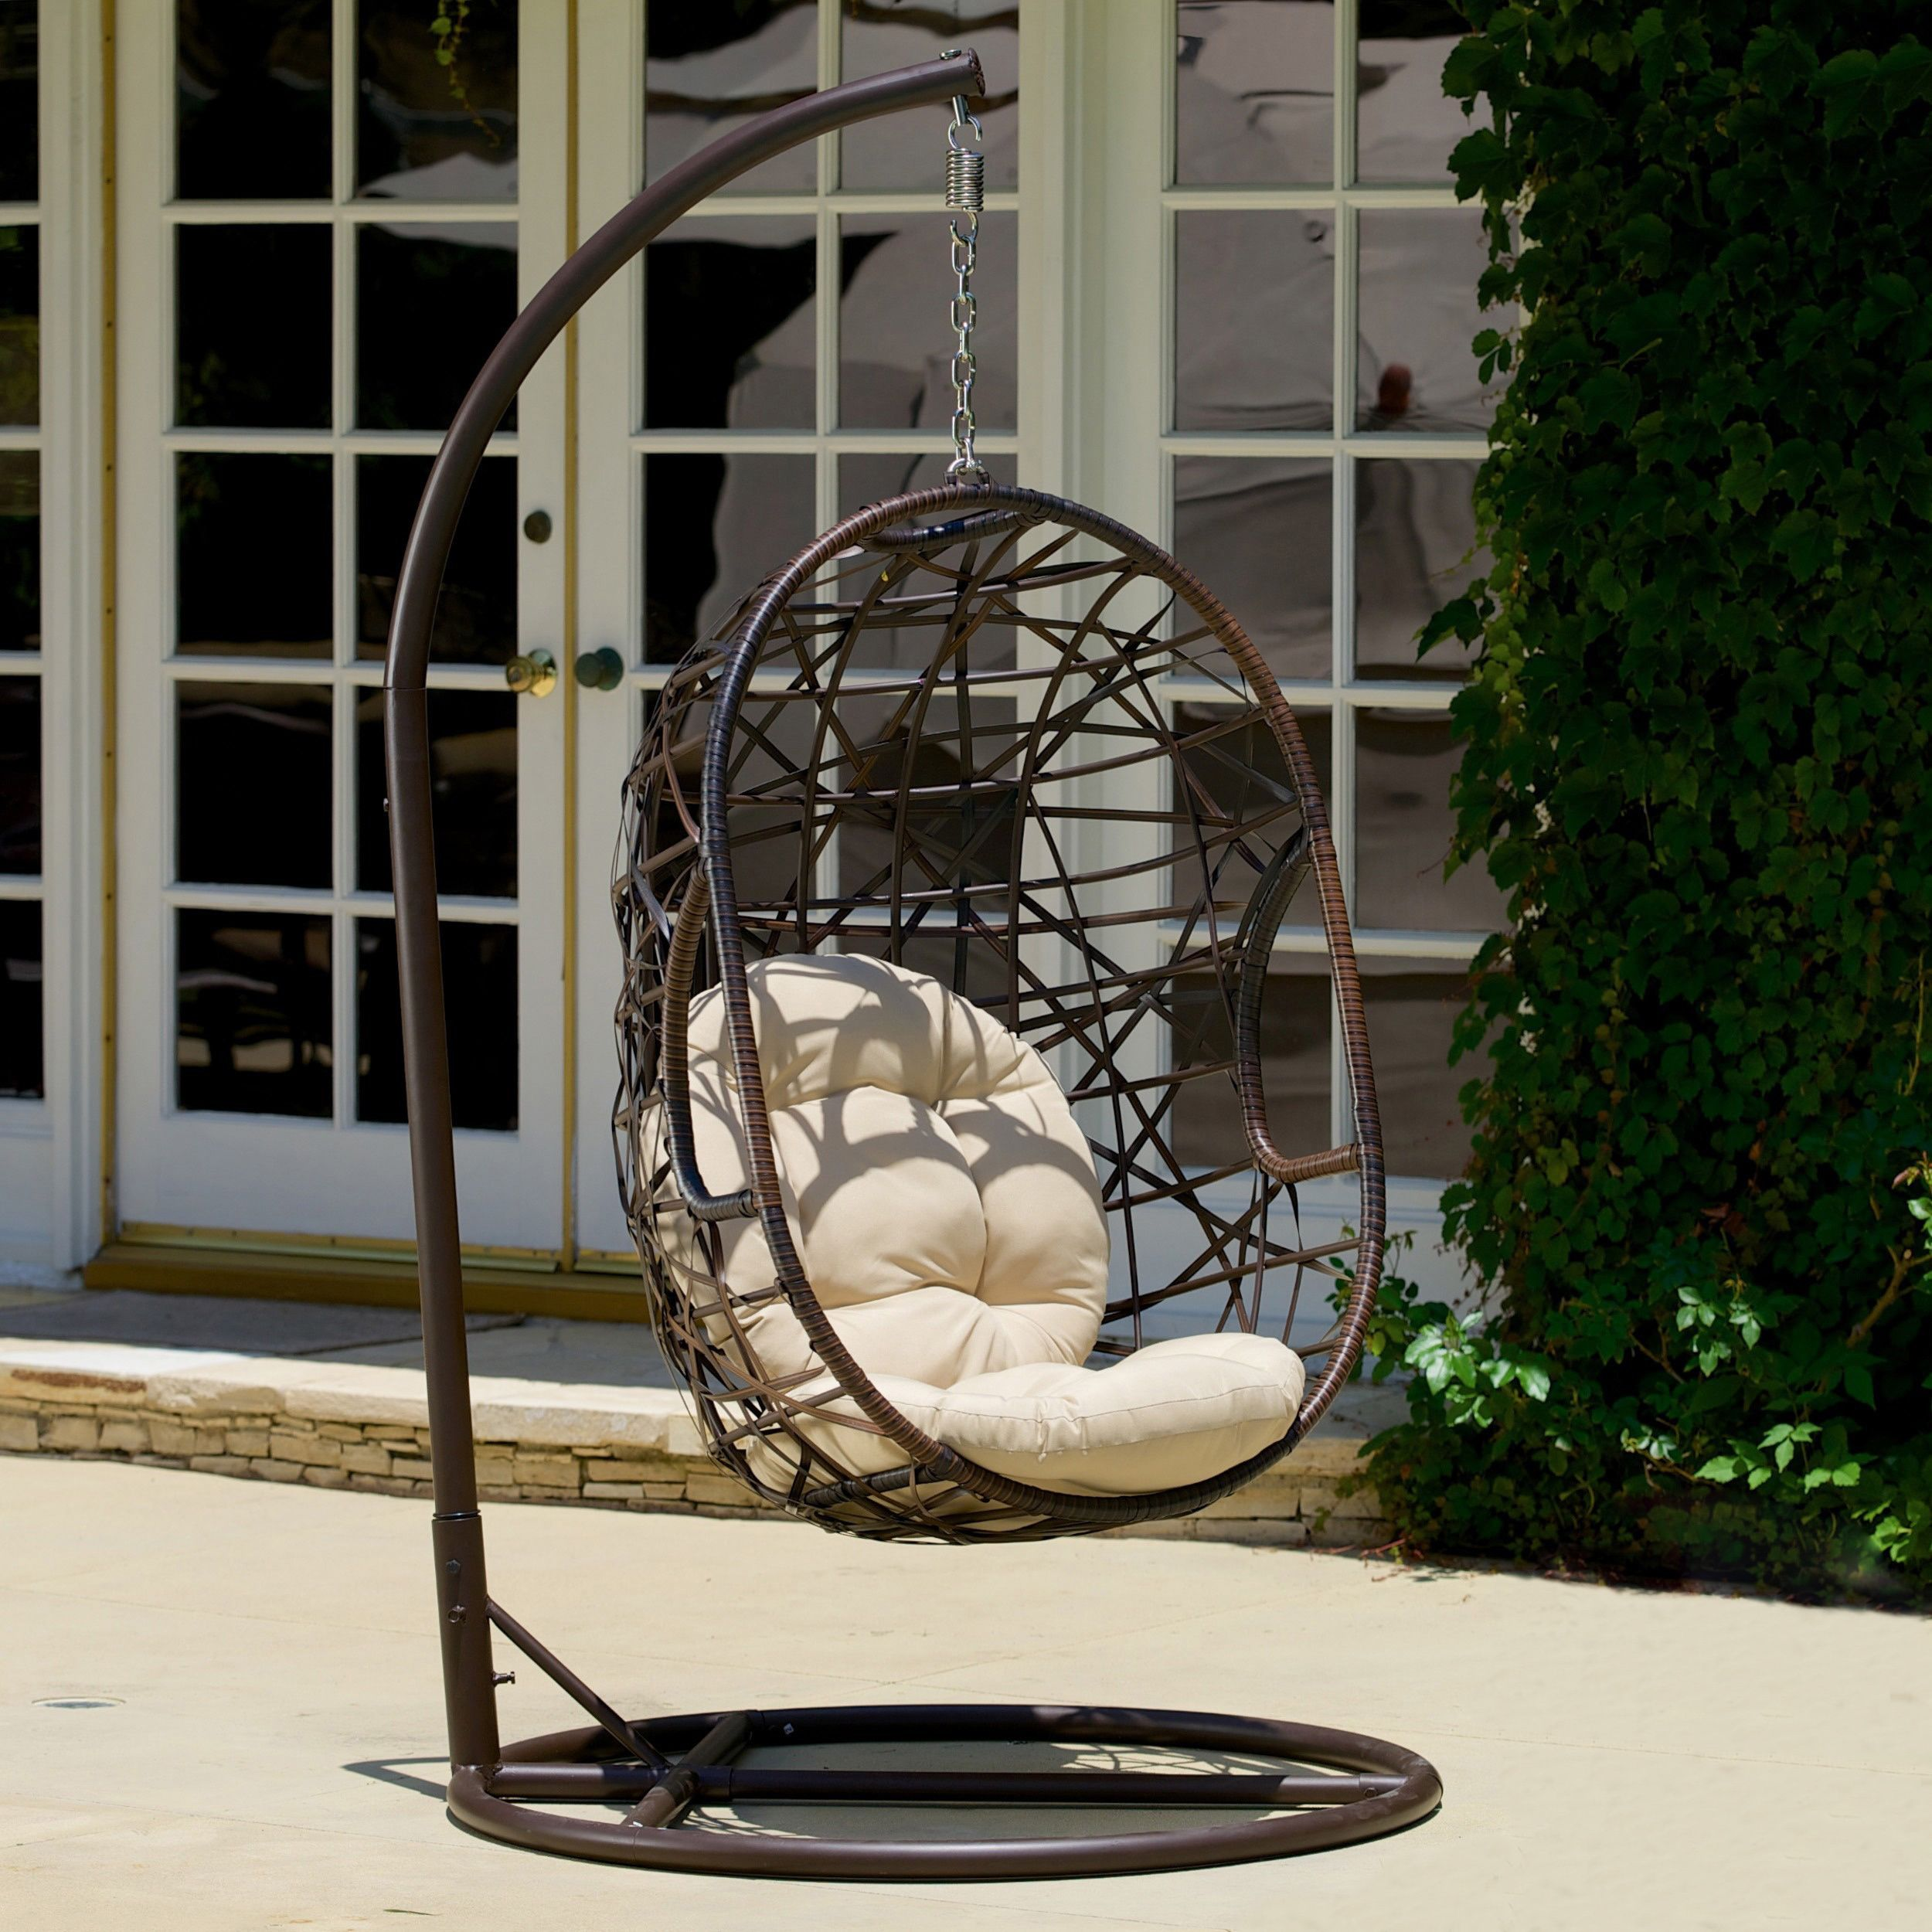 pinterest yard air porch patio swing home lounger outdoor hanging arc chair product in hammock canopy pin gardens image beautiful stand garden living chaise furniture